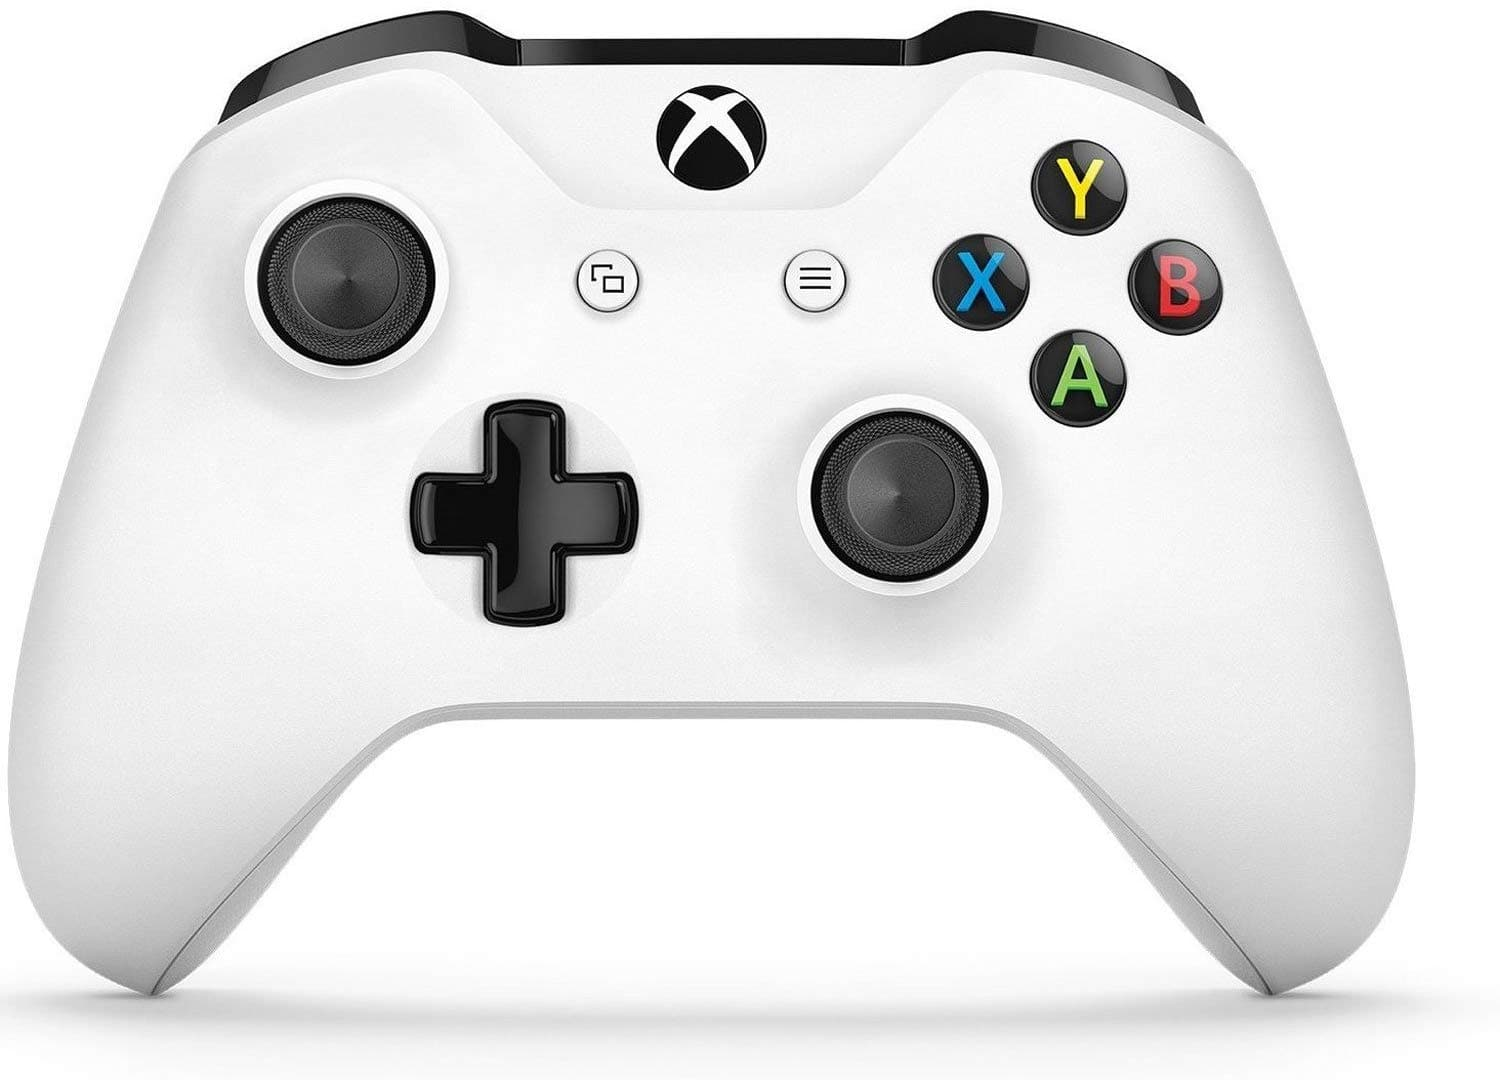 [Sold Out] Xbox Wireless Controller - White [White] $35.99